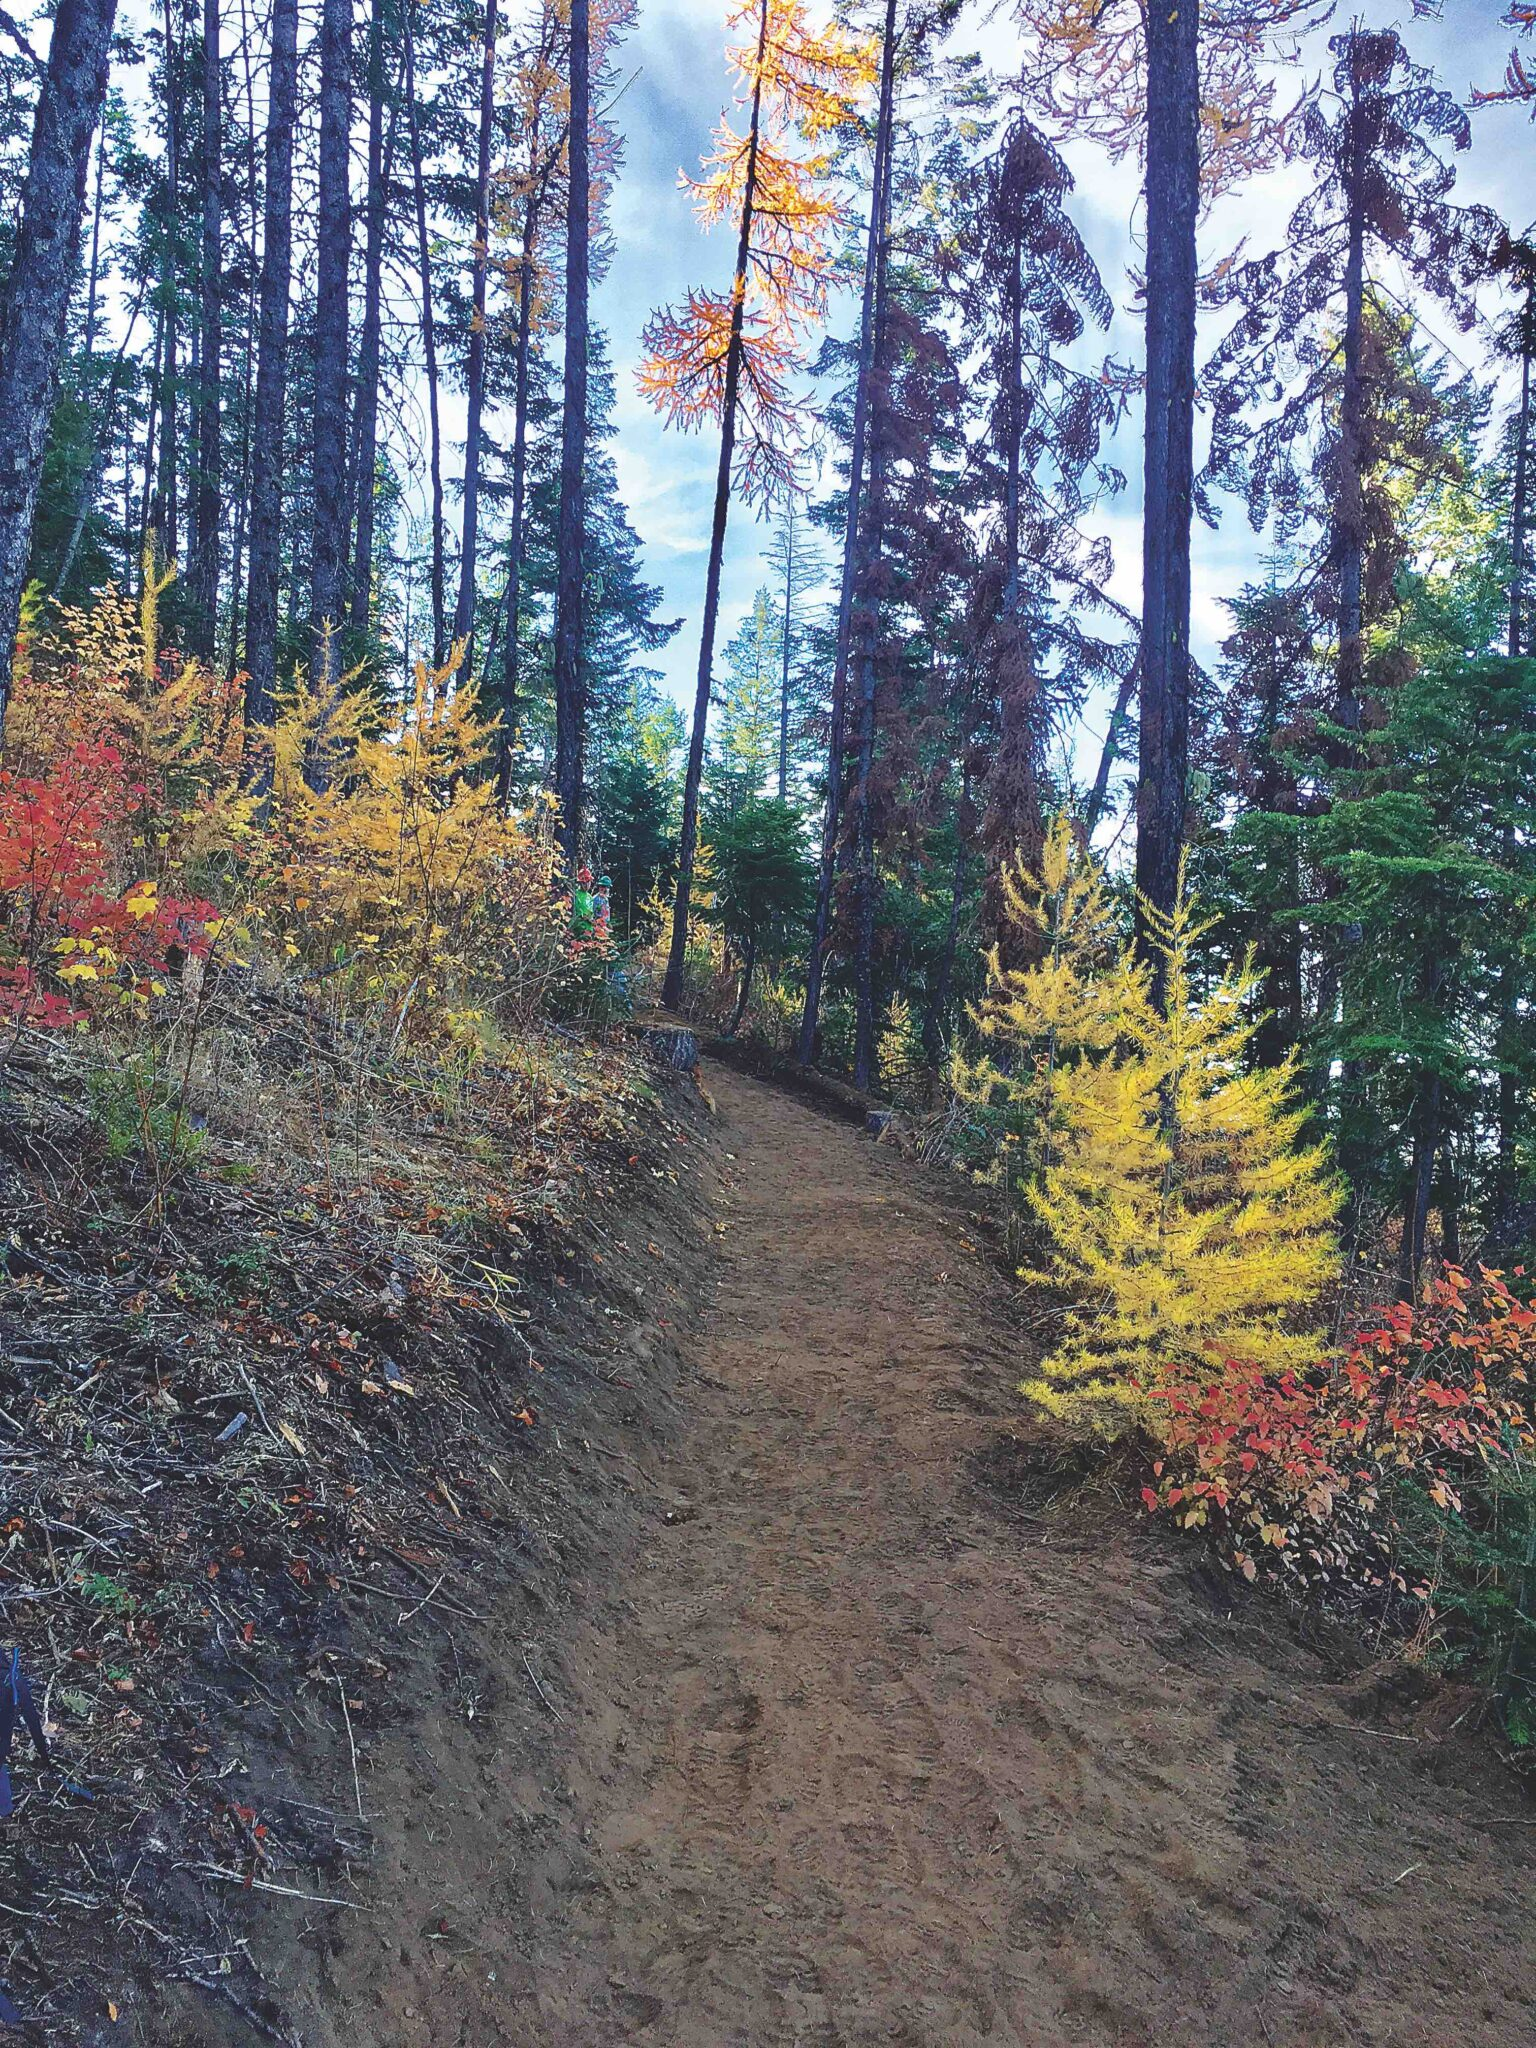 Forested trail at Mica Peak Conservation Area, with yellow larch trees and red and orange hues on leaves.